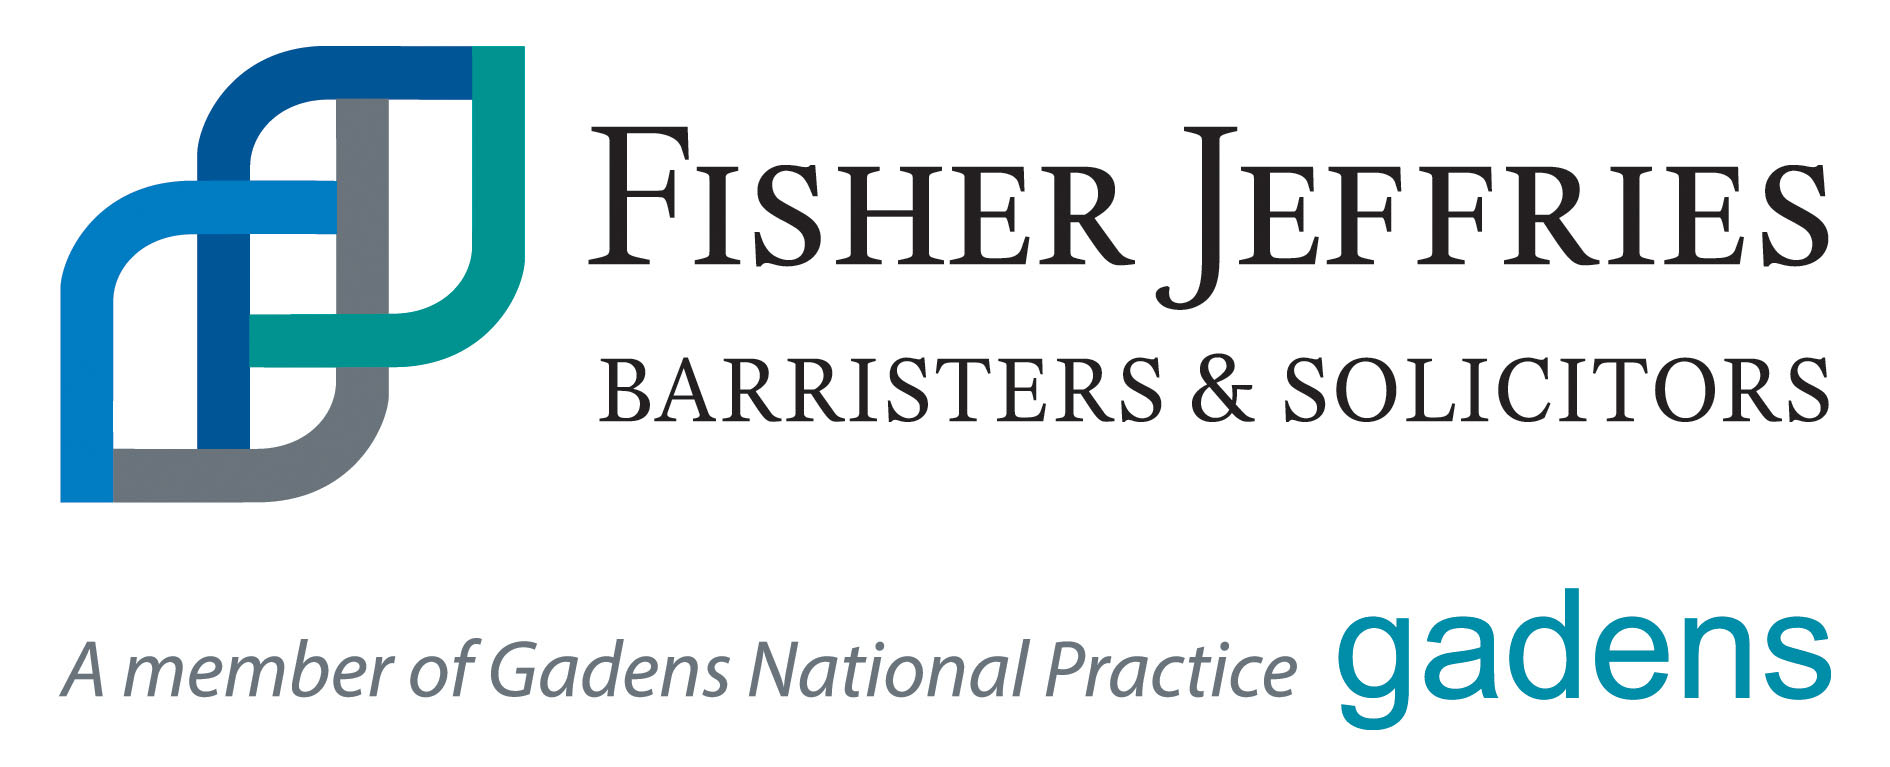 Fisher Jeffries - Barristers & Solicitors